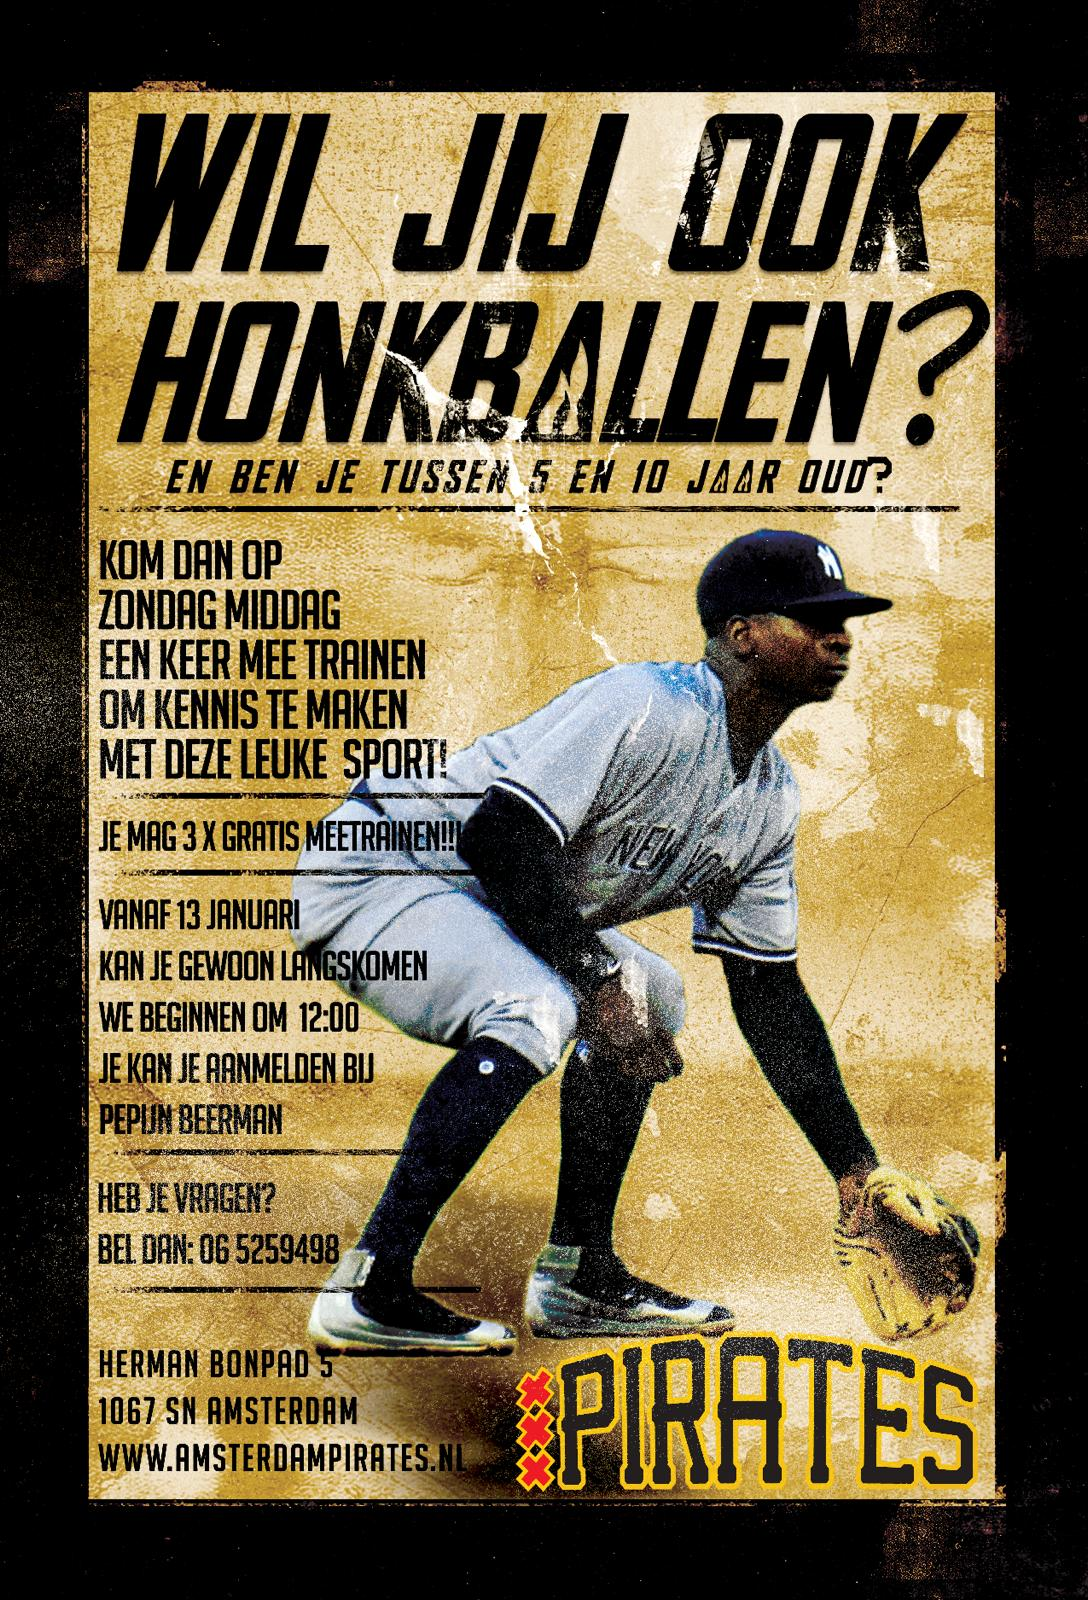 Pirates Honkbal Instuif.JPG